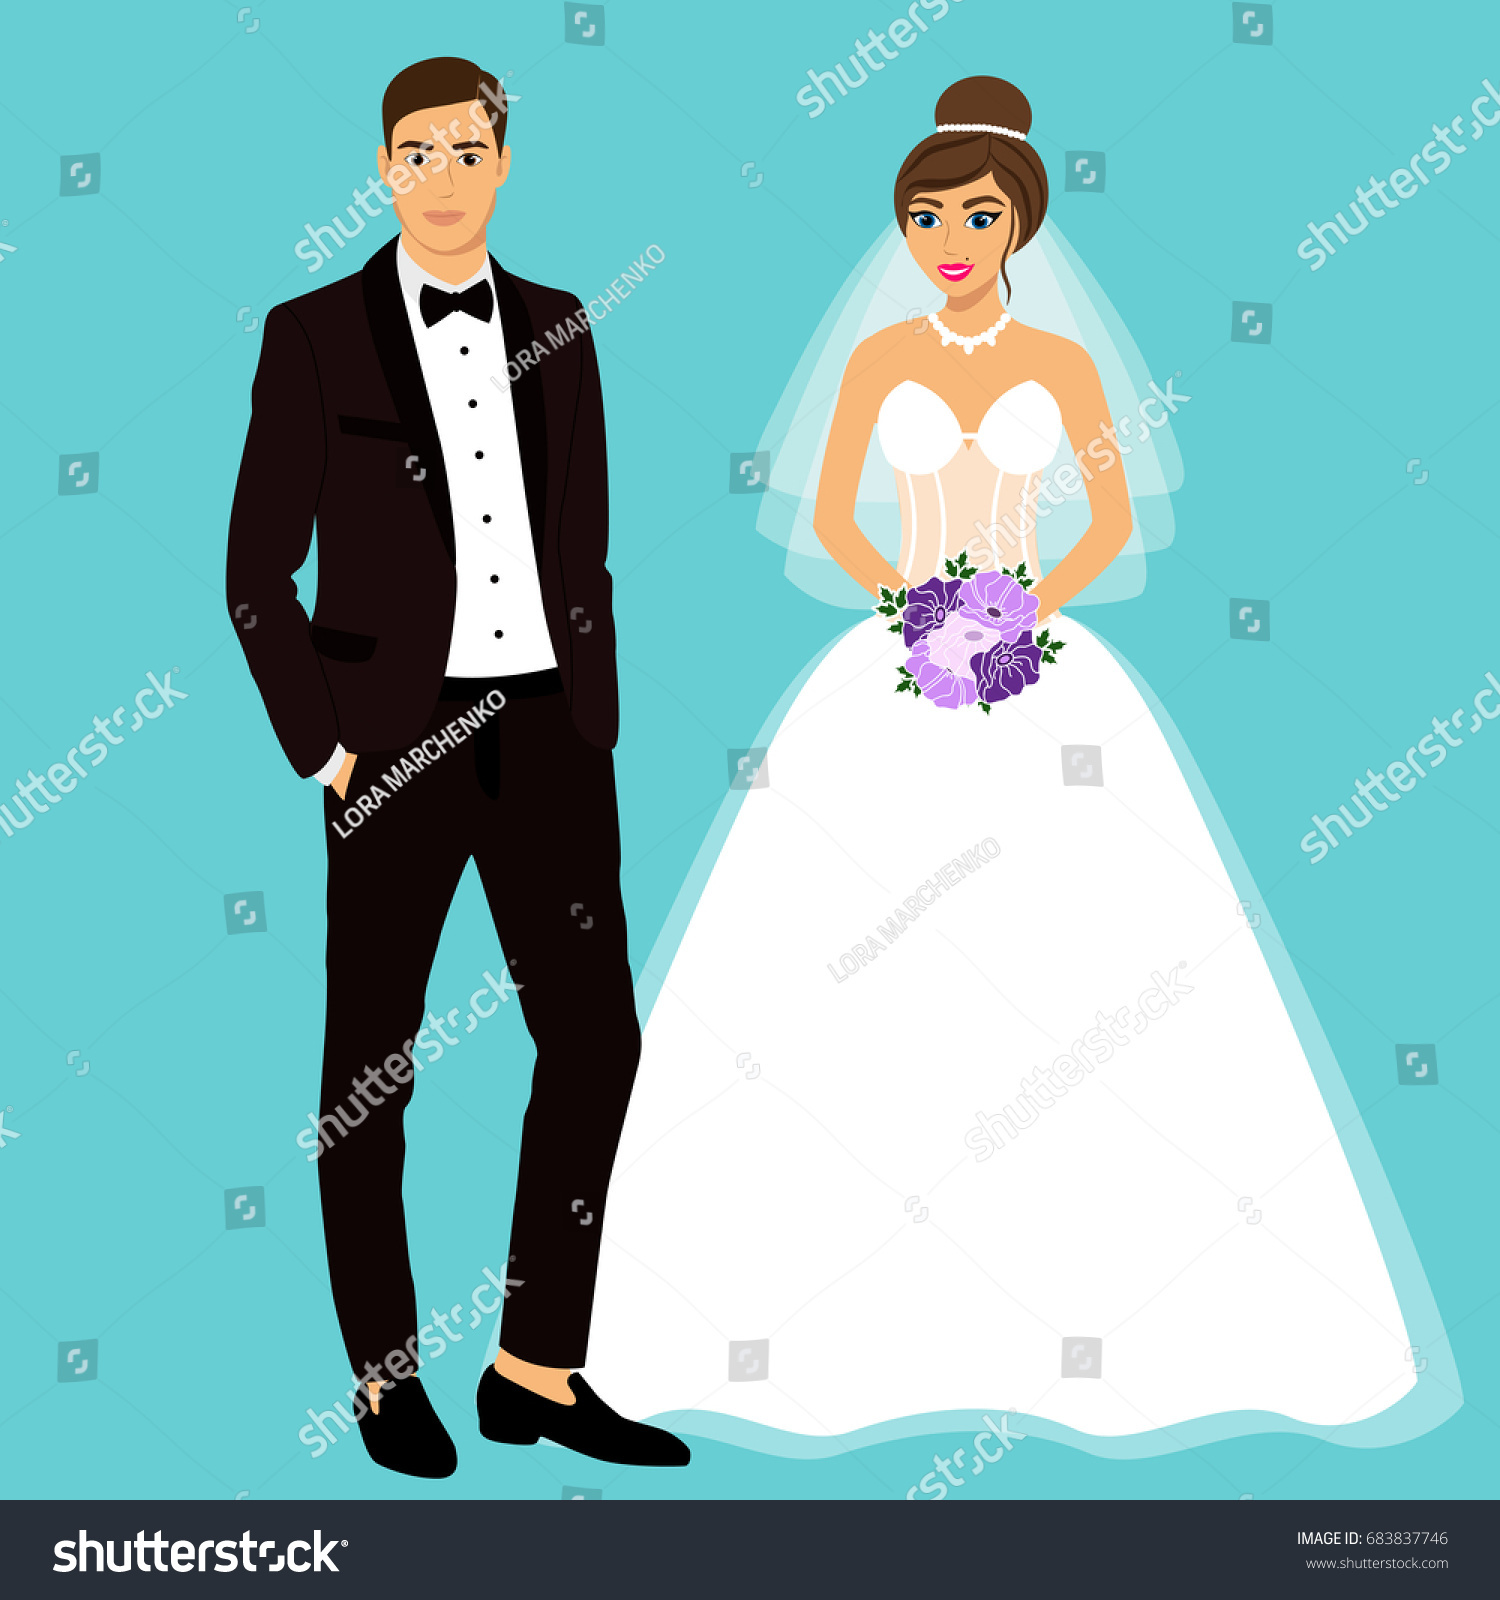 Wedding Card Clothes Bride Groom Wedding Stock Illustration ...